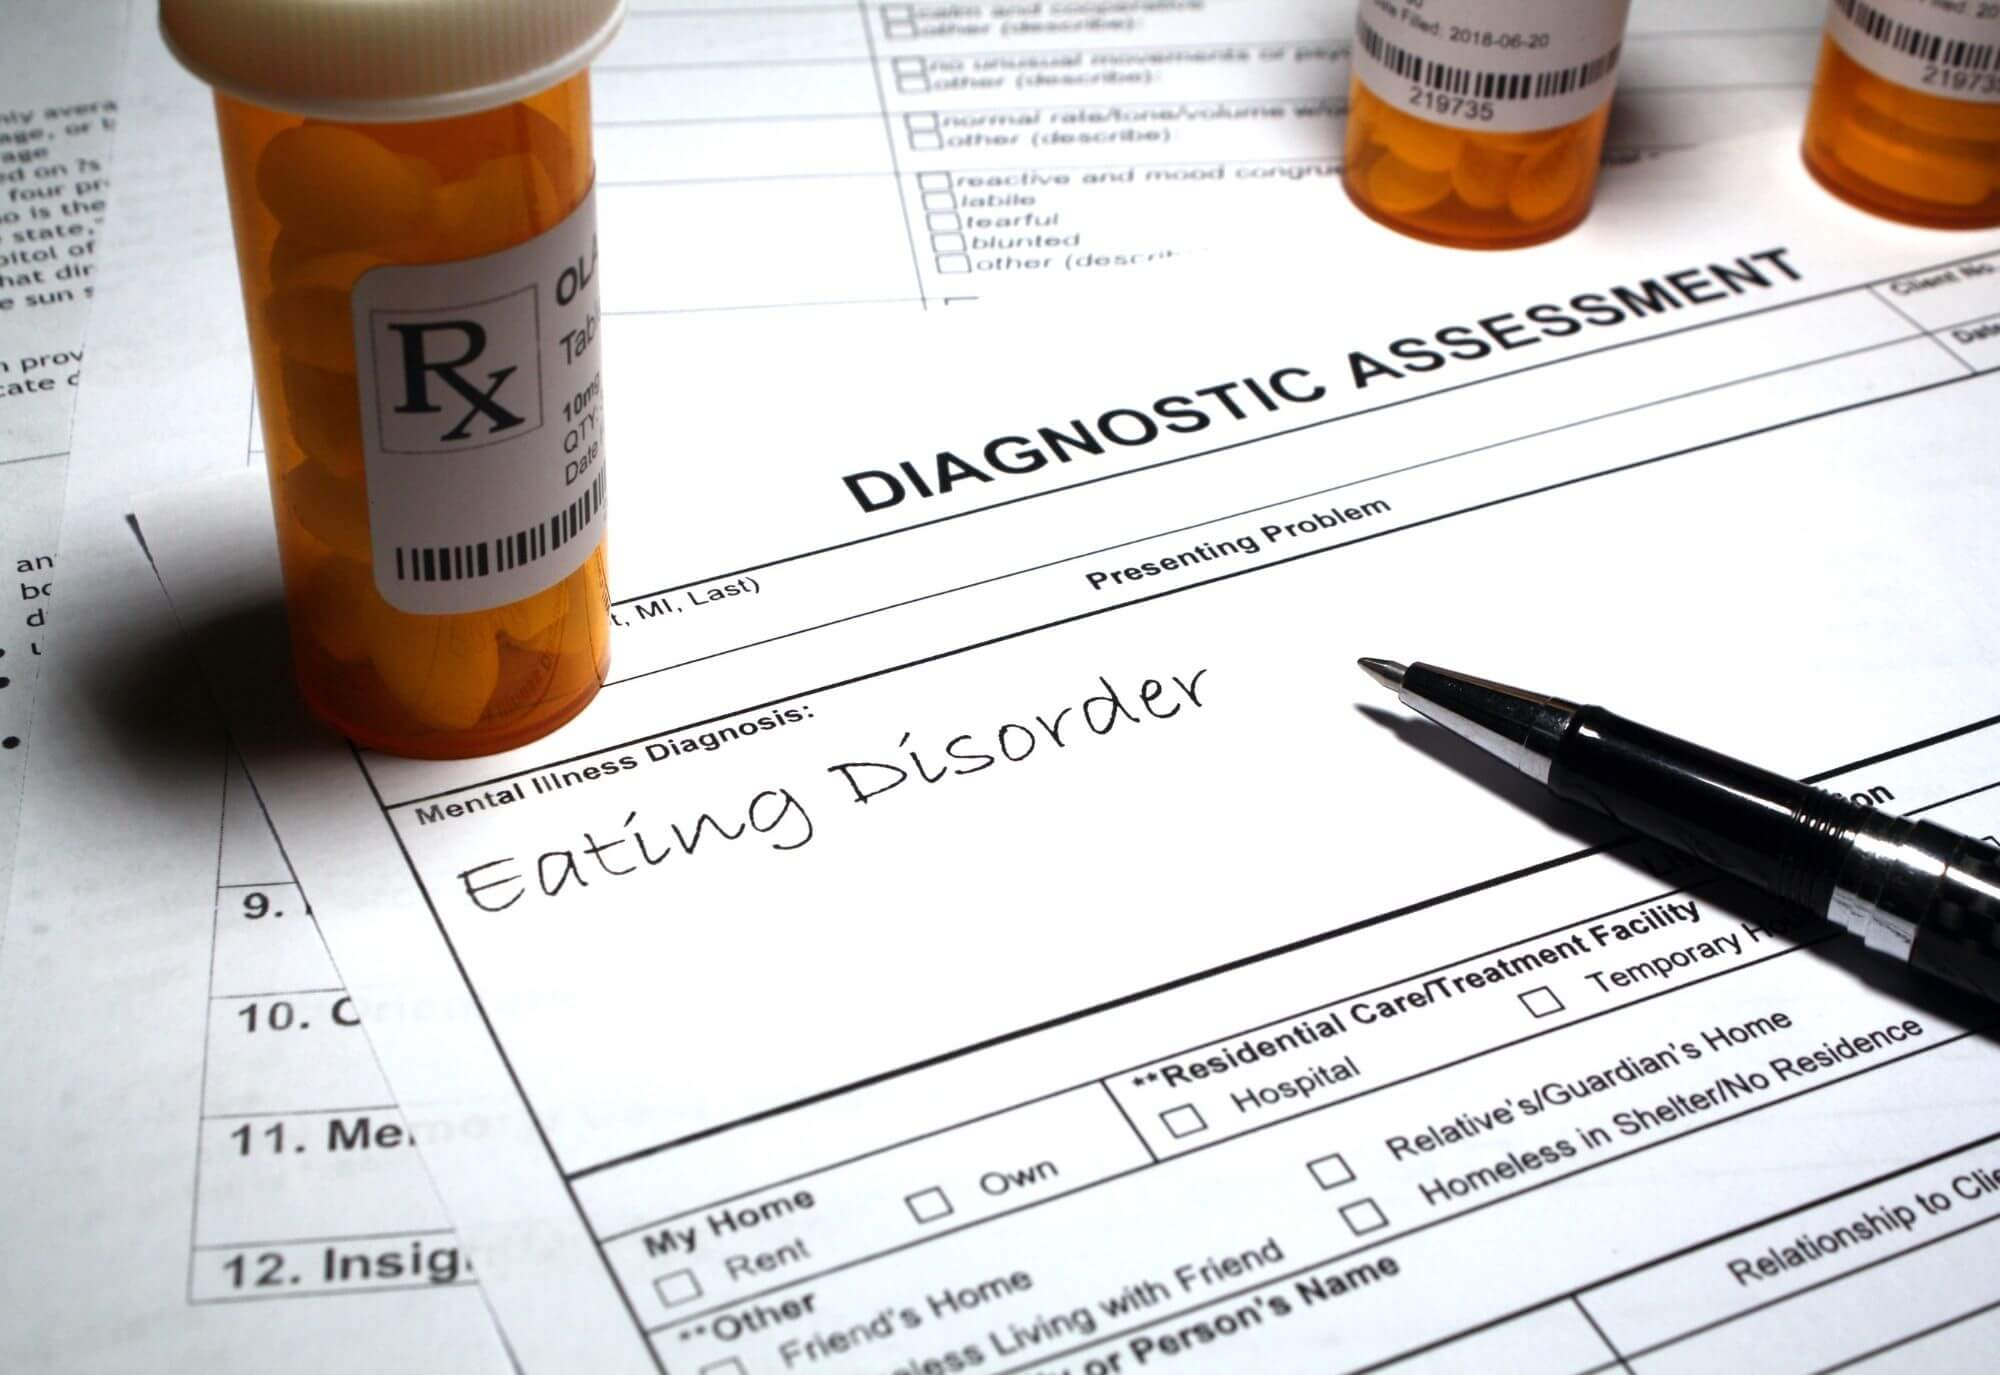 Medical treatments for eating disorders